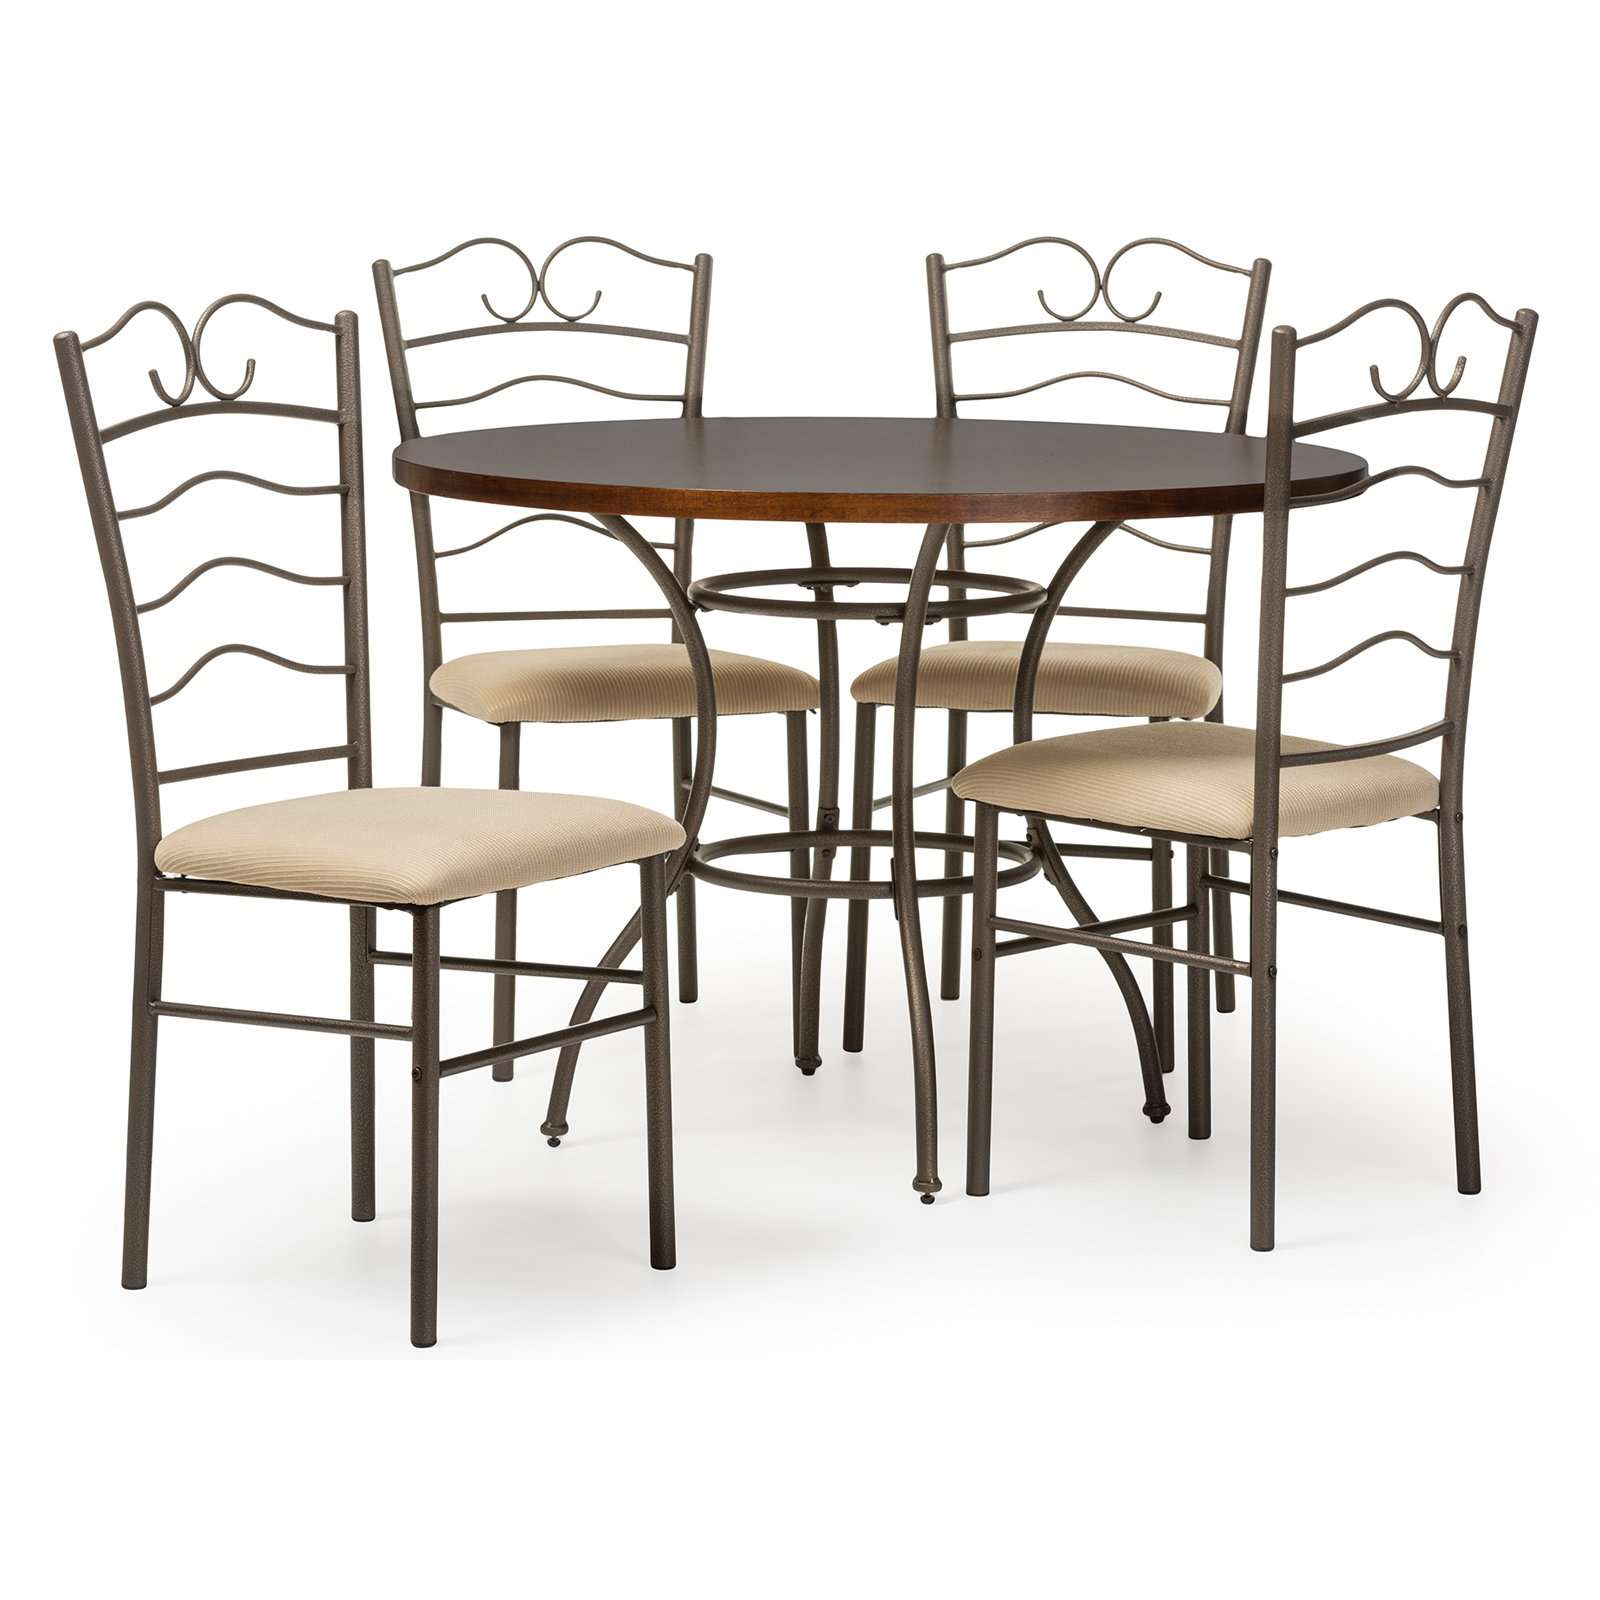 Baxton Studio Monarch 5 Piece Dining Table Set